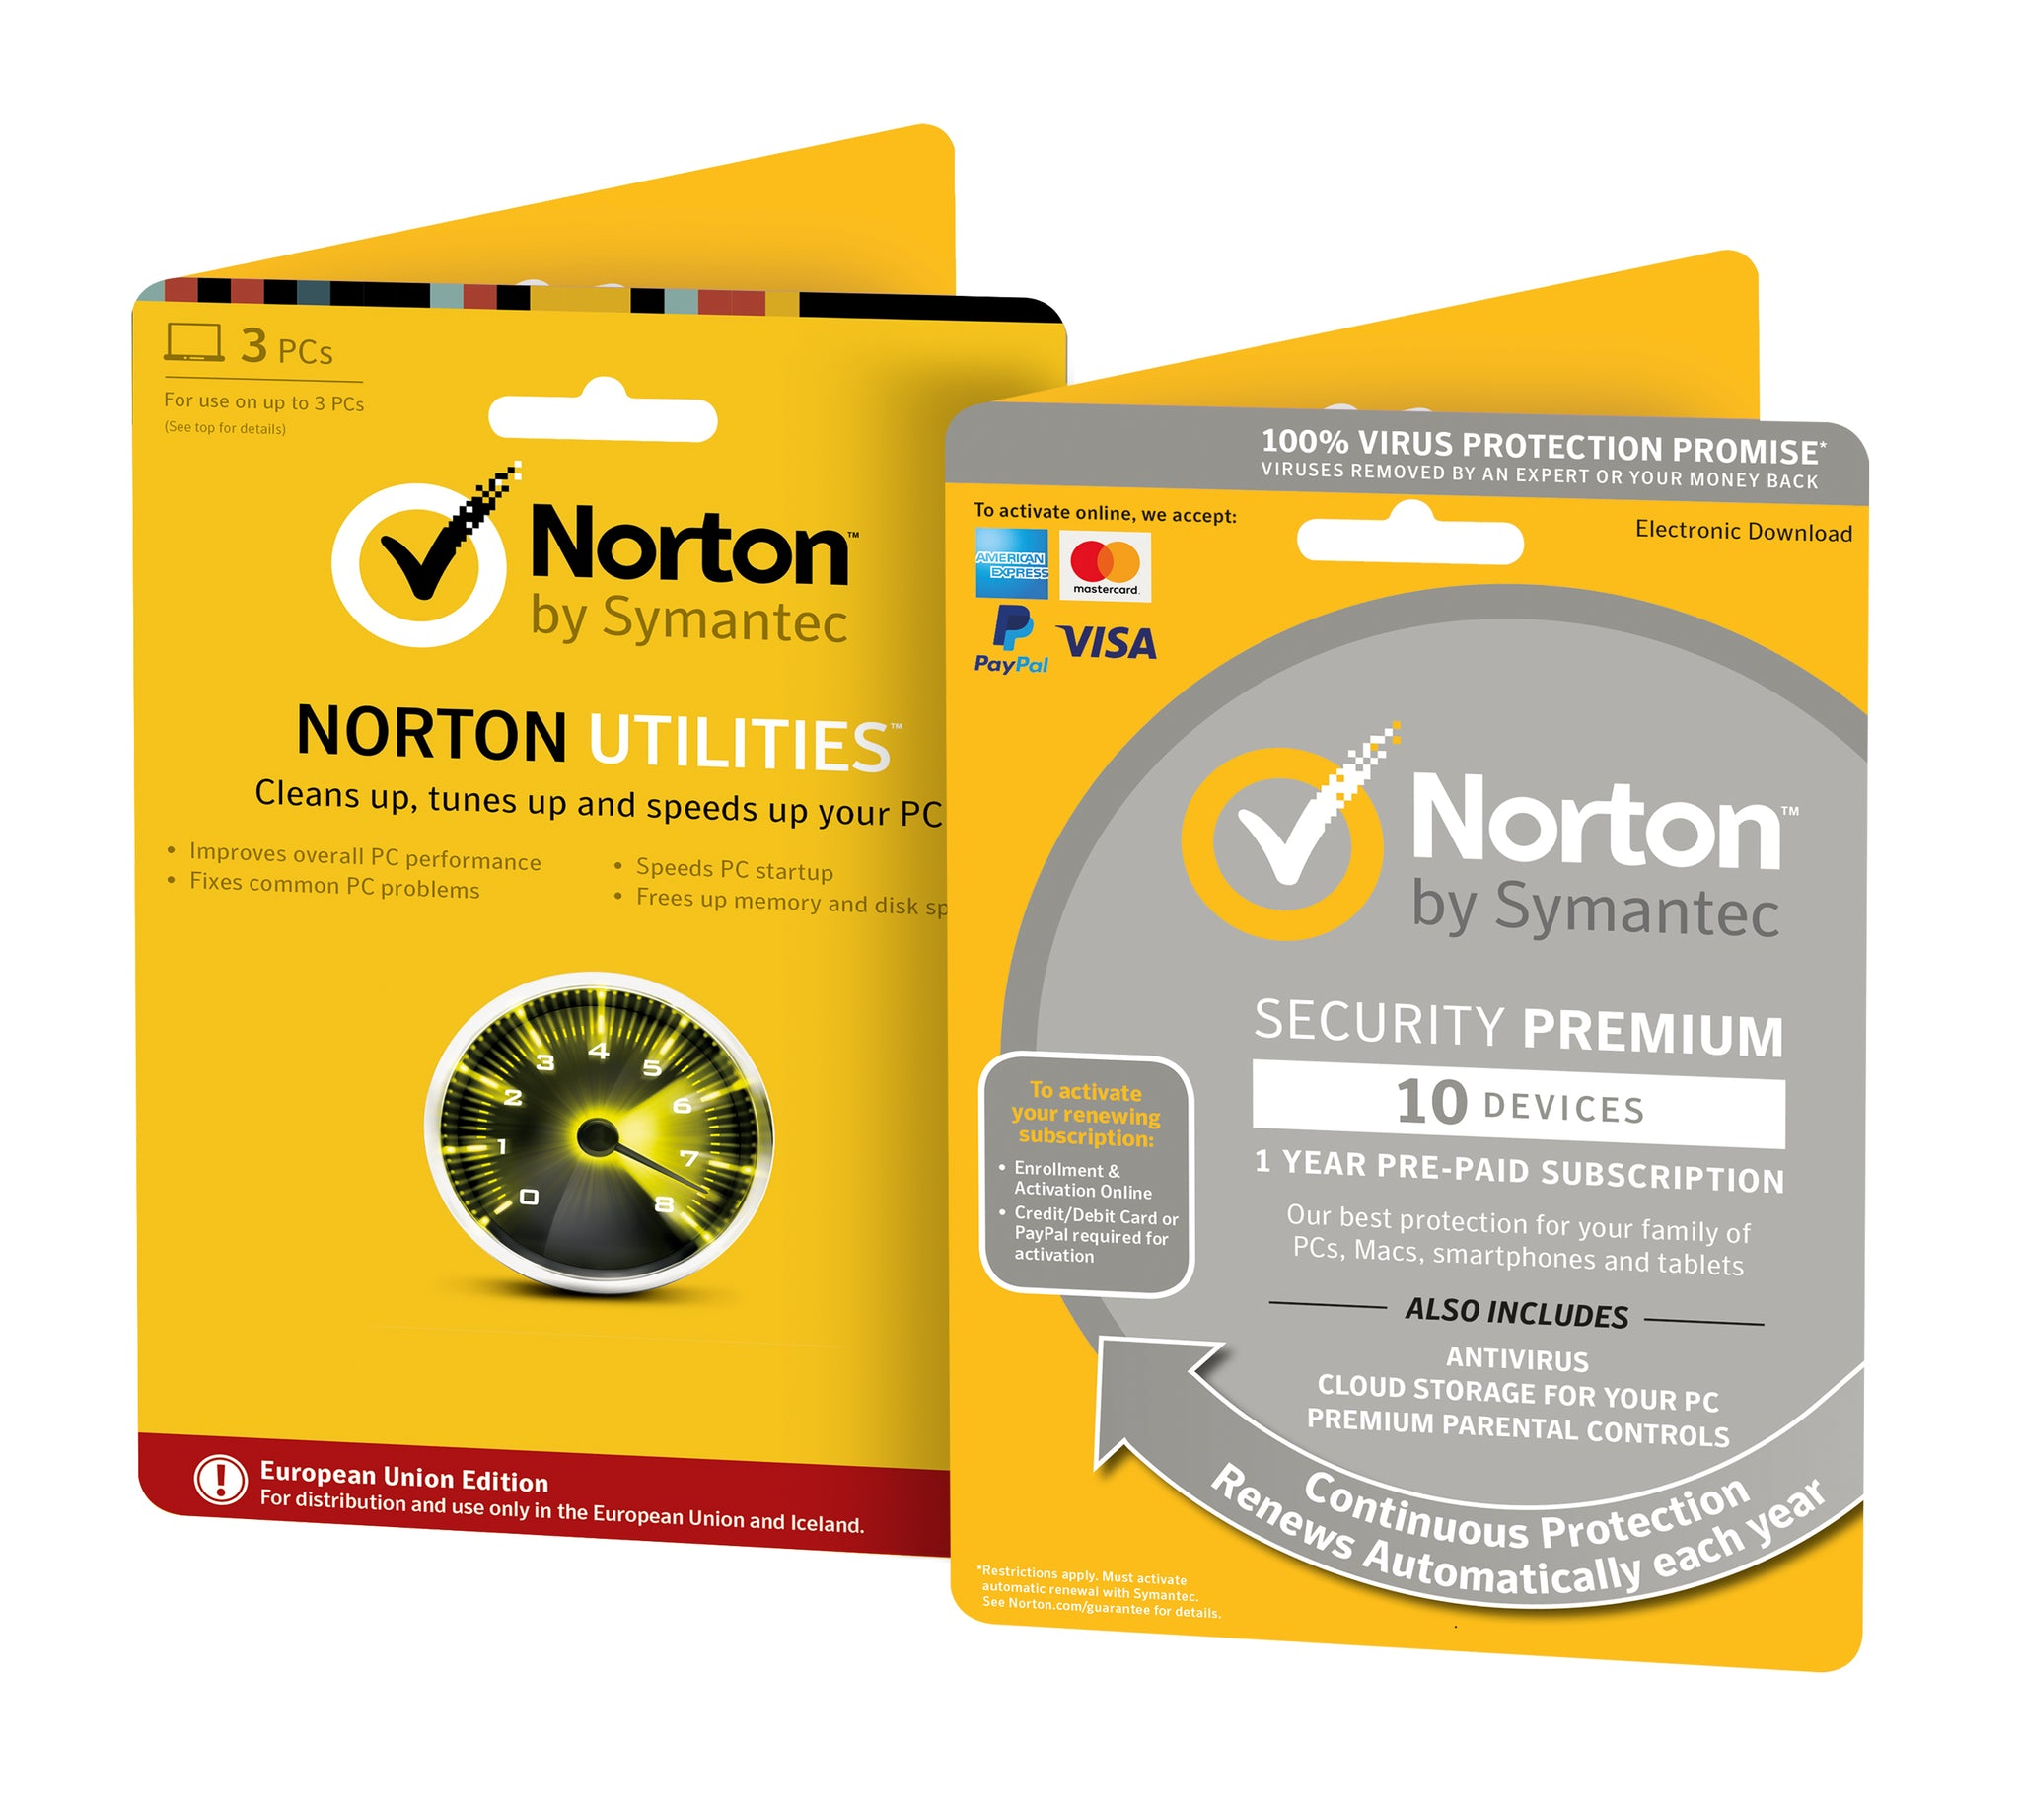 Norton Security Premium + Backup + Family Protection + Norton Utilities Tune-Up Bundle